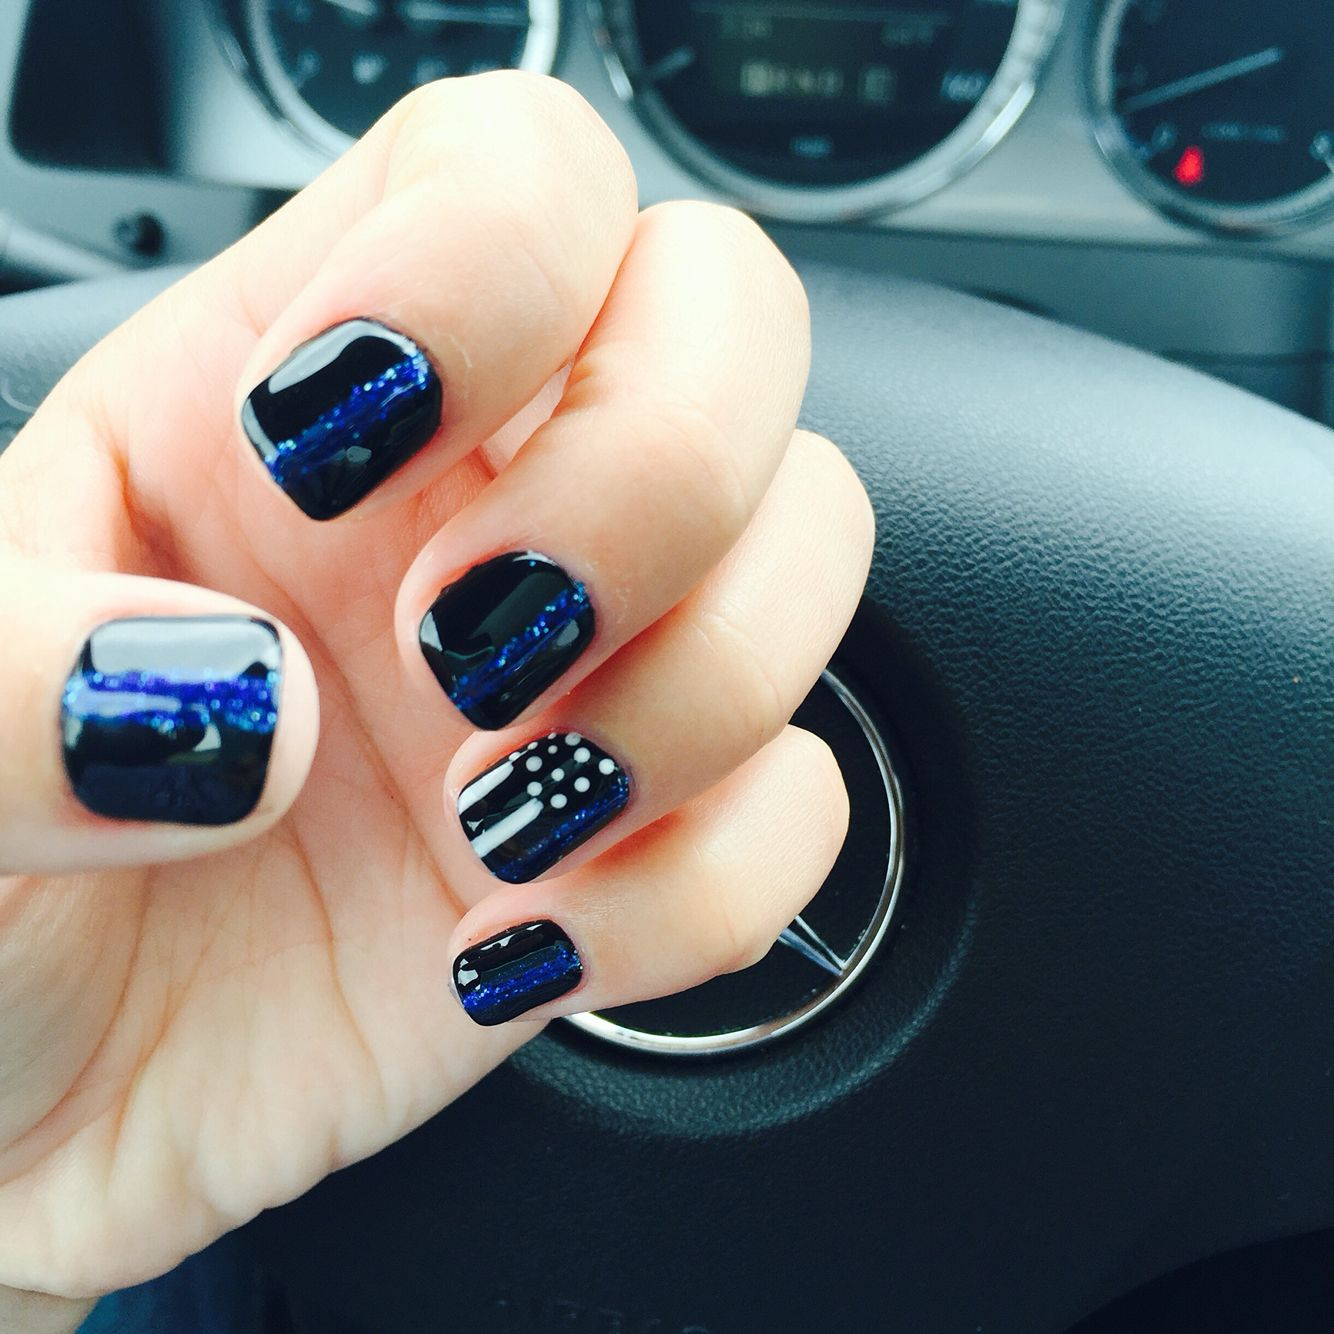 Can You Get Hiv From A Manicure Thin Blue Line Nails Lines On Nails Black And Blue Nails Diy Nails Blue